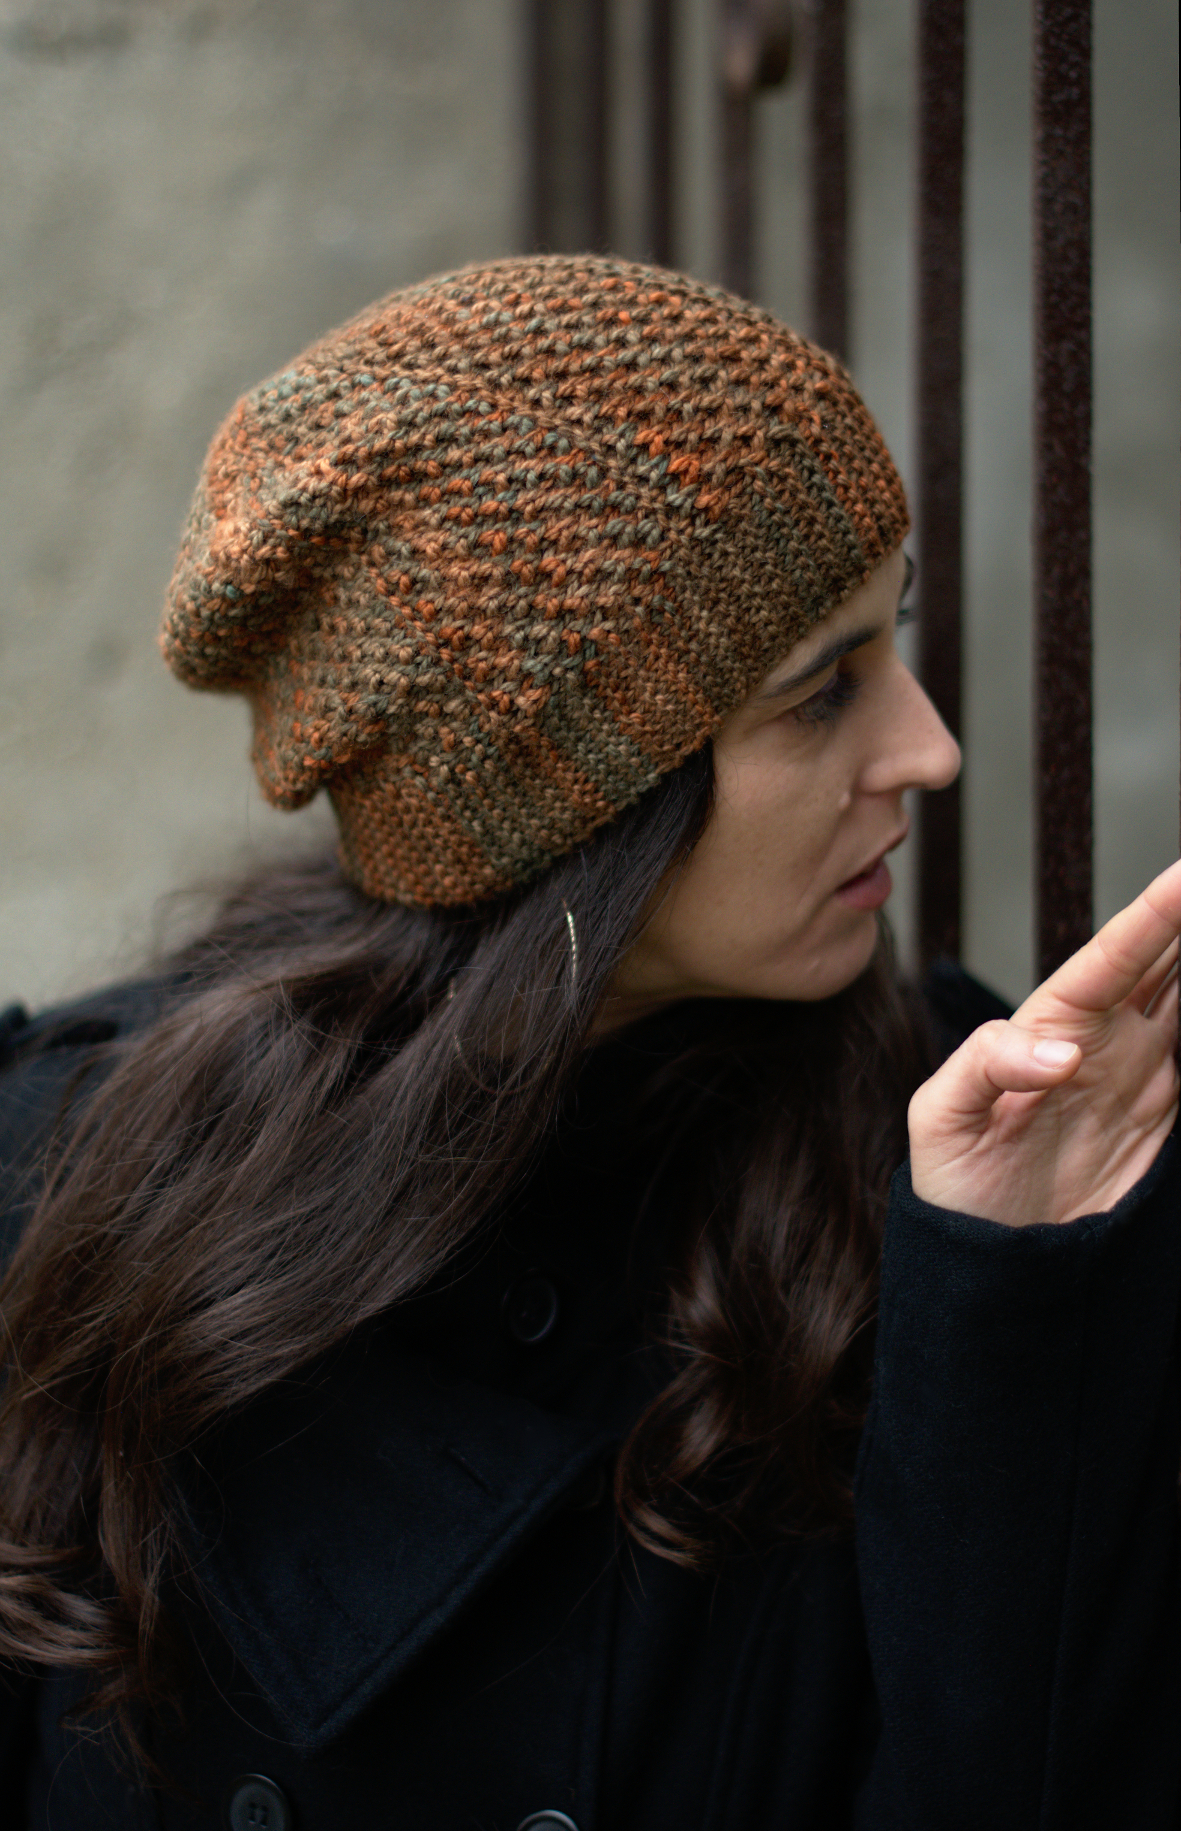 Muratura hat - knitting pattern